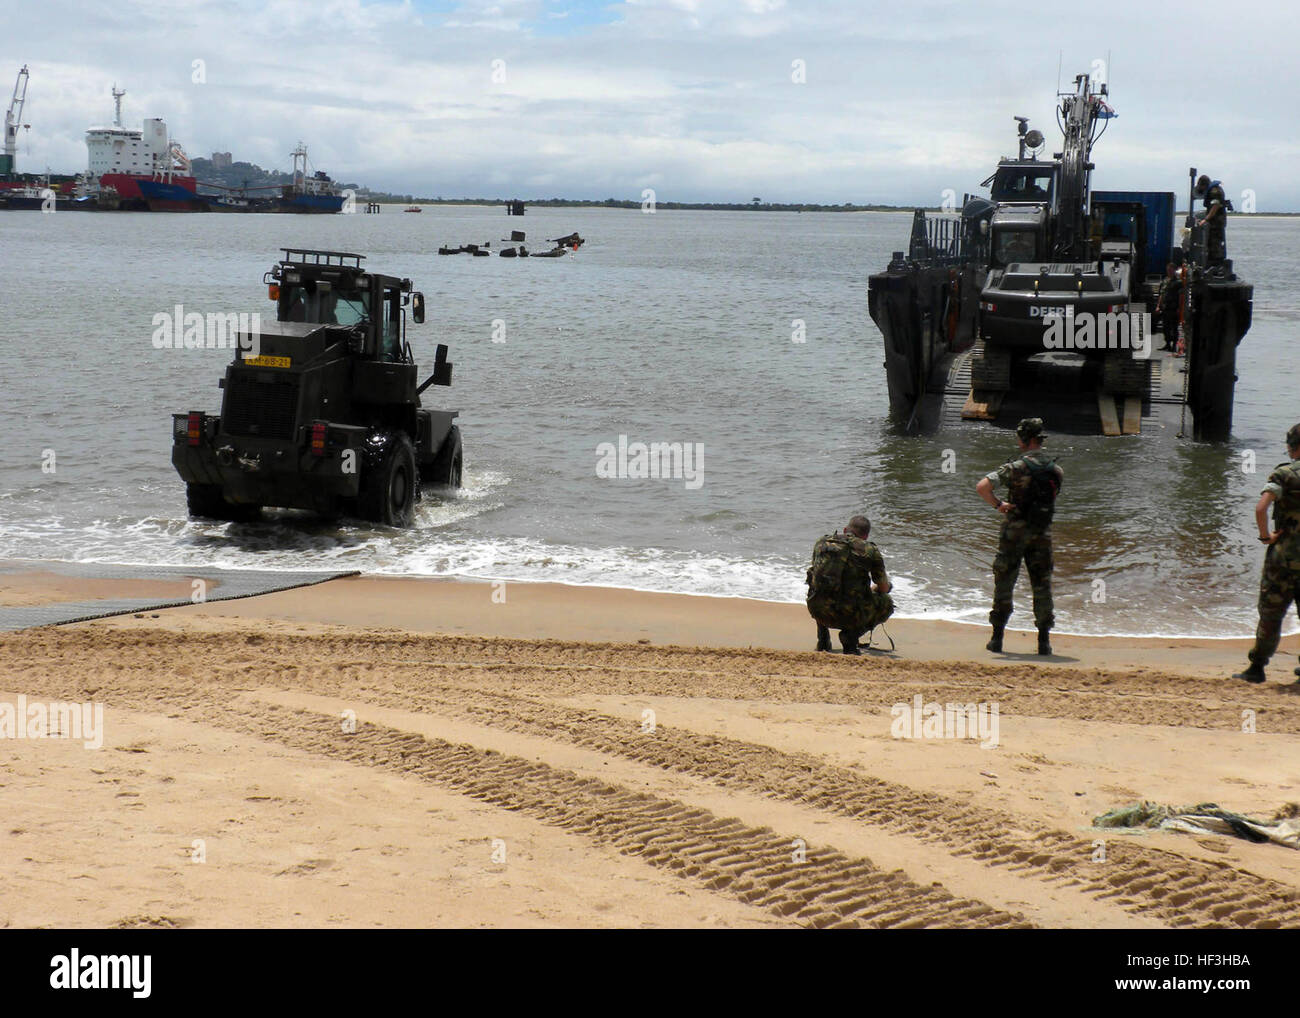 091017-M-8332M-036 MONROVIA, Liberia (Oct. 17, 2009) Seabees and equipment assigned to Naval Mobile Construction - Stock Image